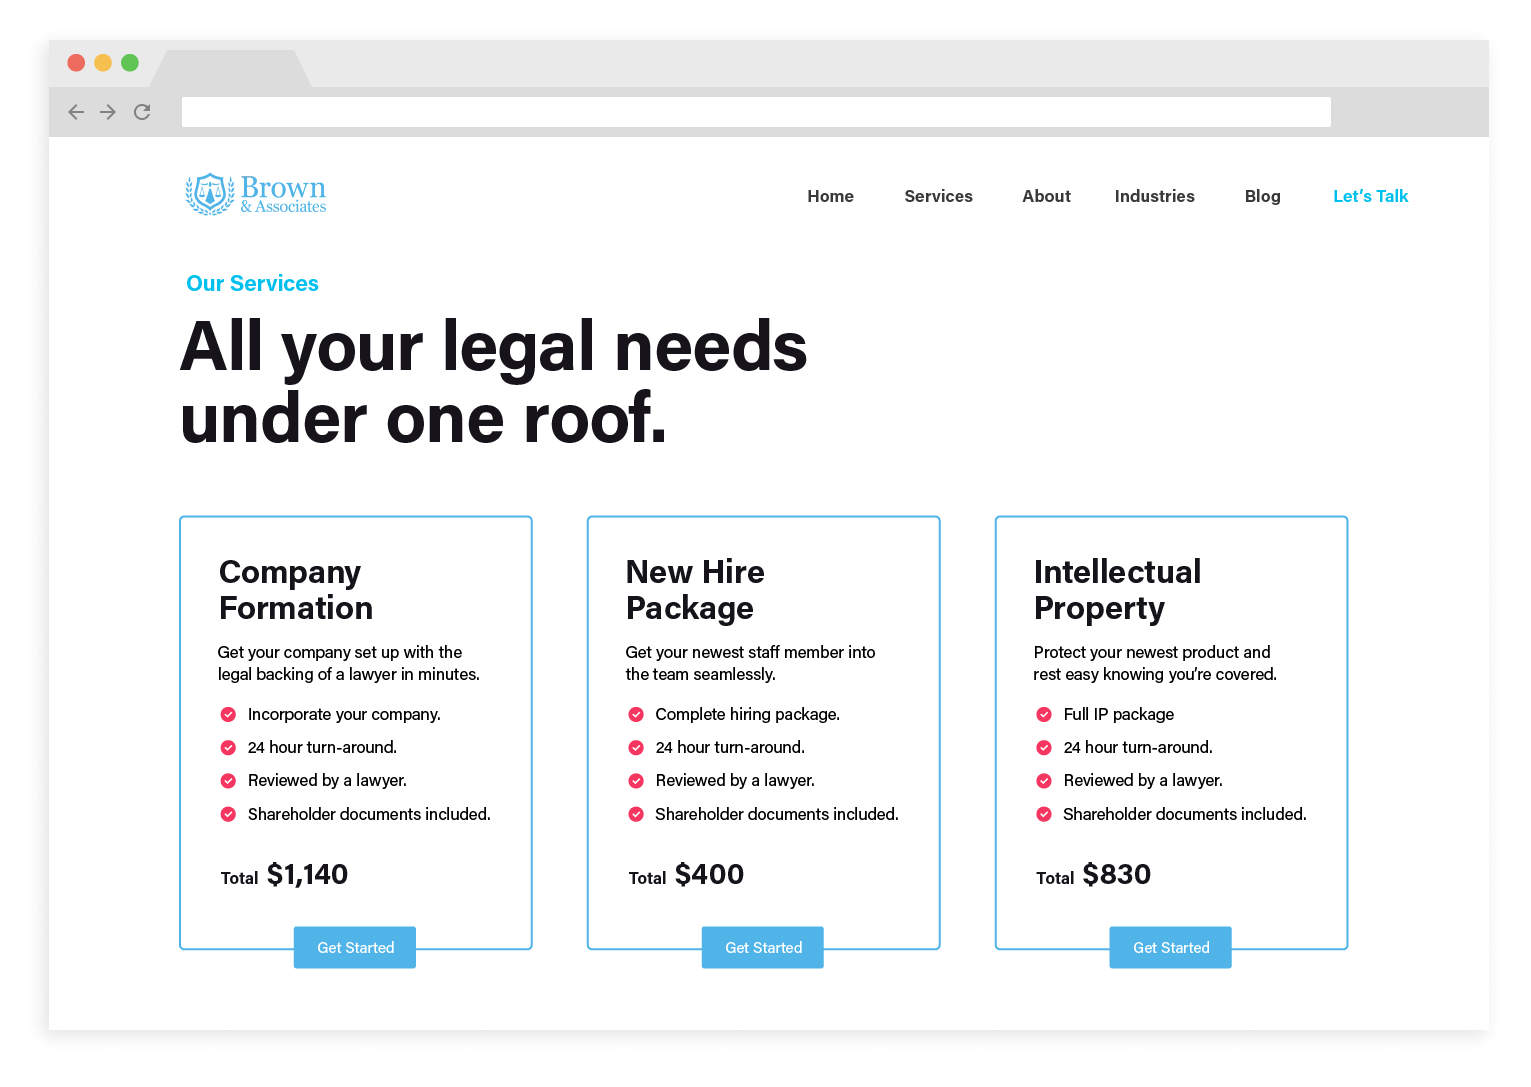 Law firm using Rally to improve their services page